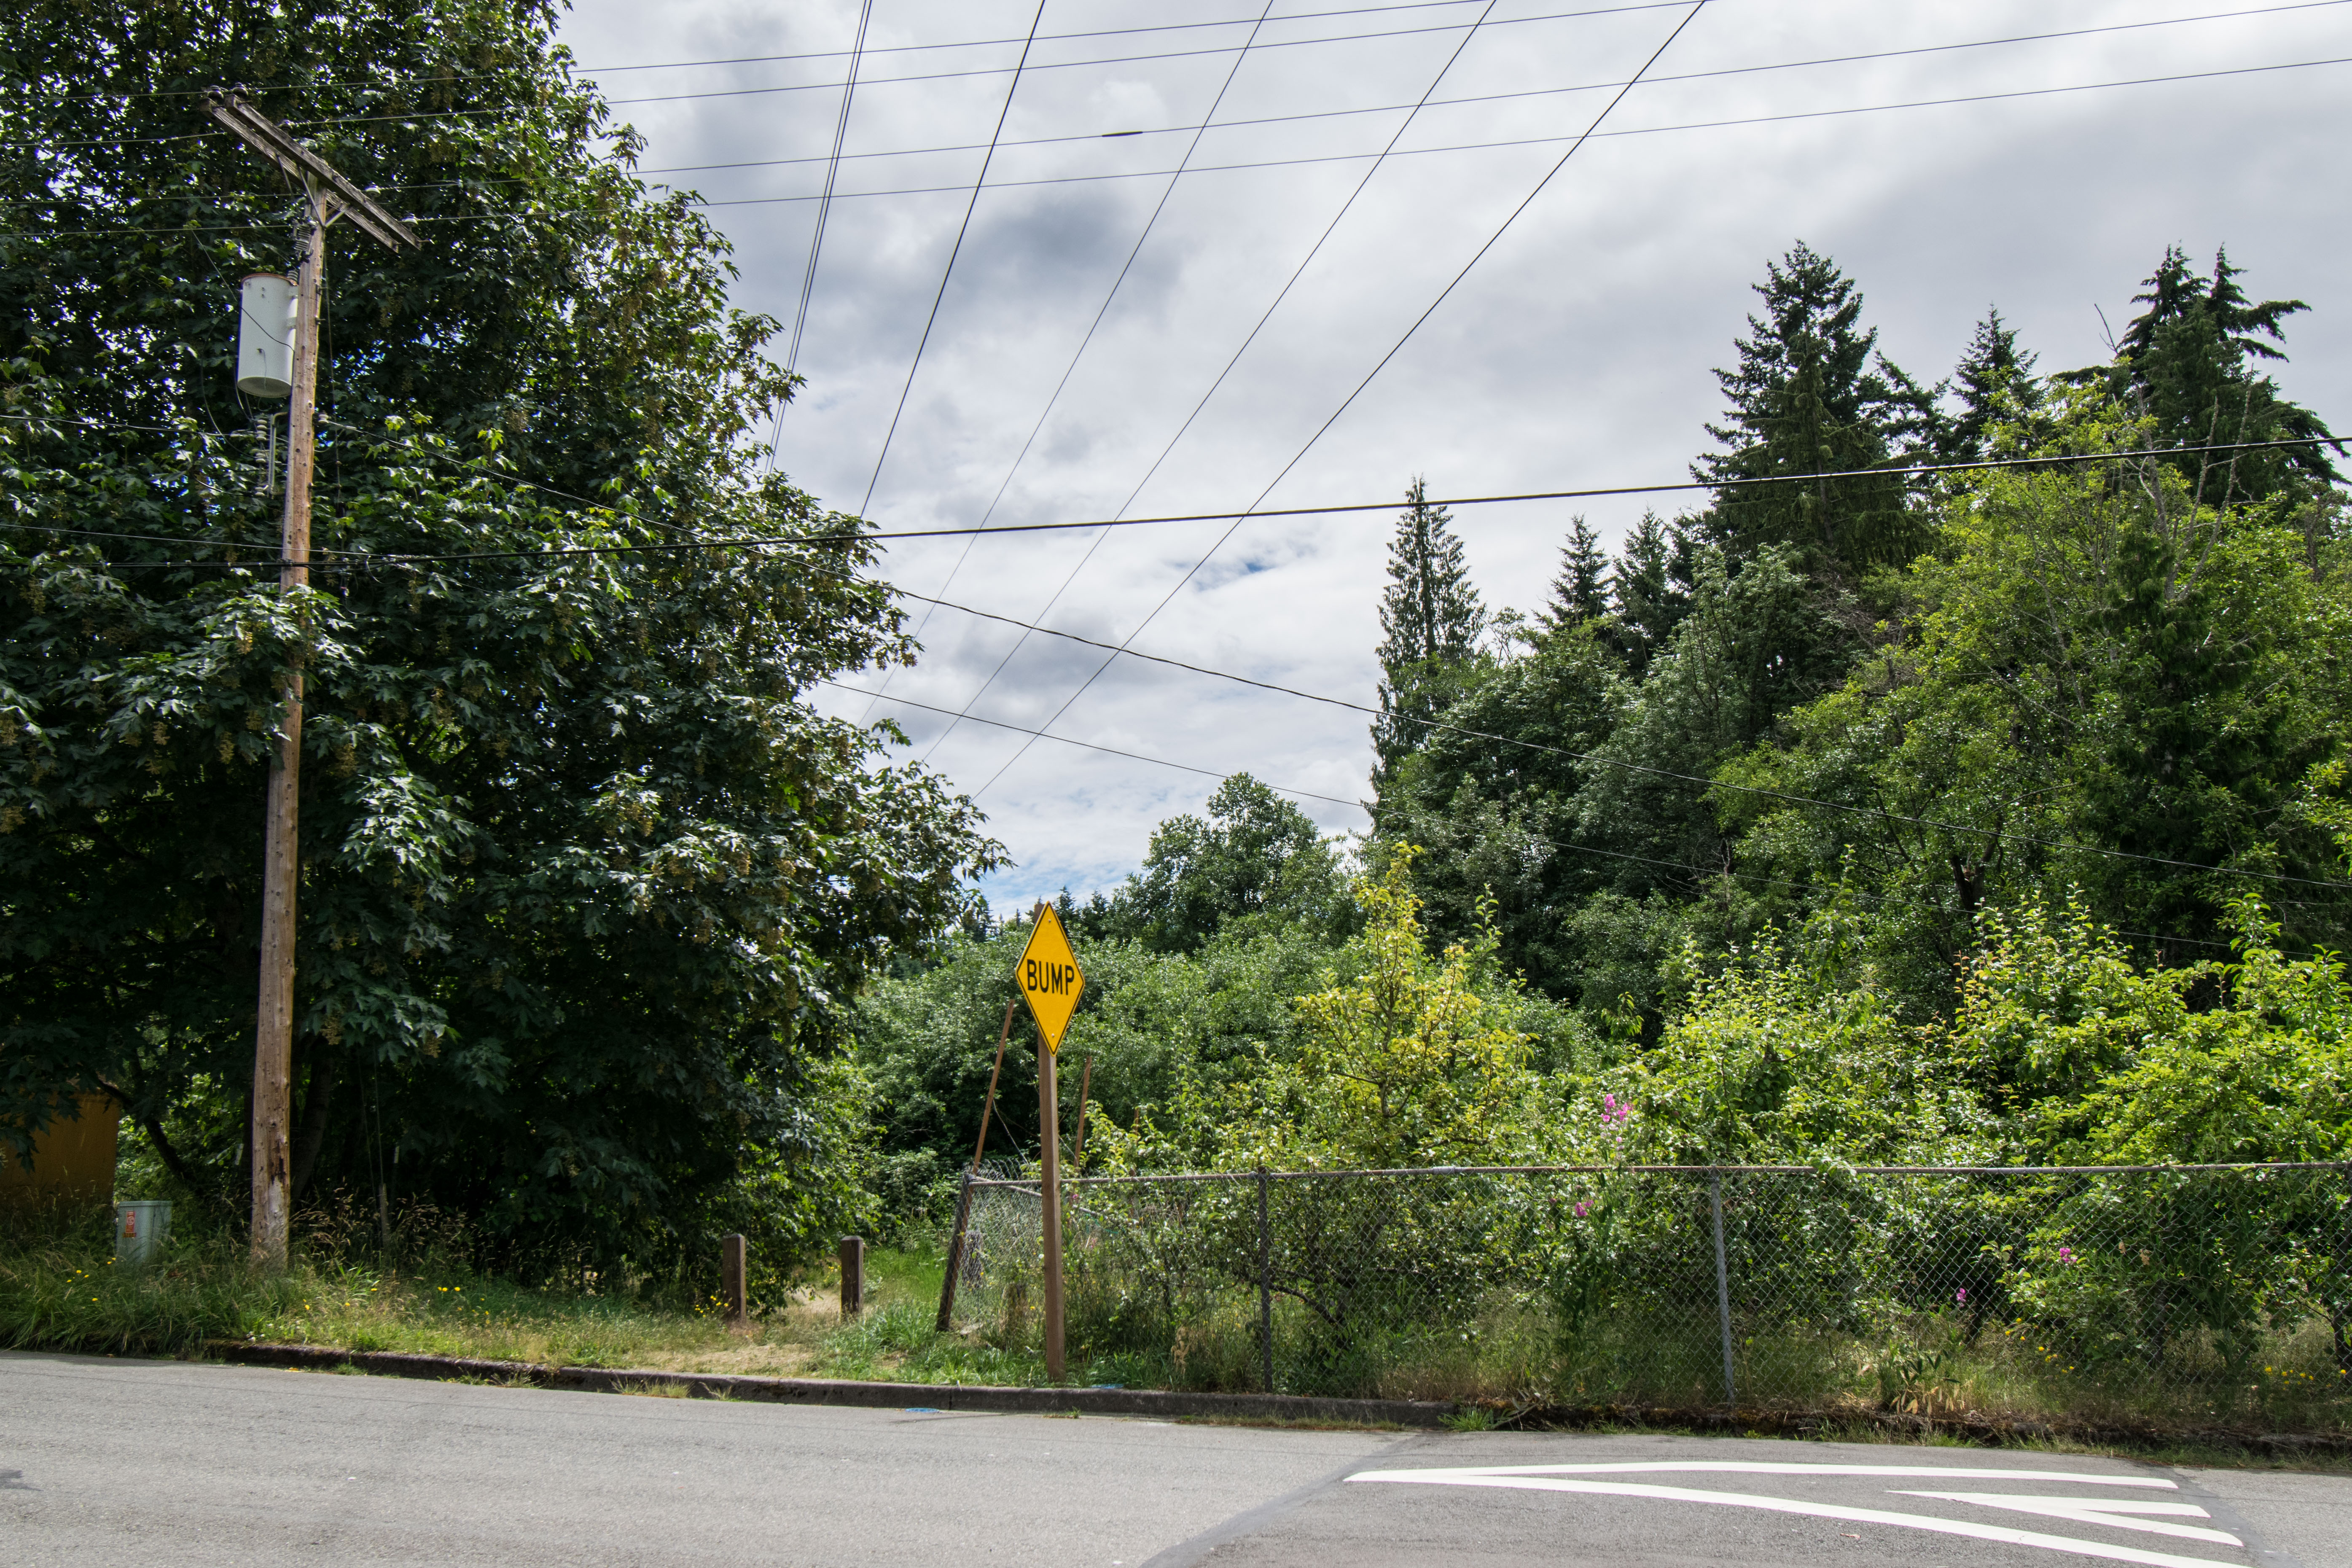 ../images/trails/crosstown_west//07 Start of shared Route with Horse Trail.jpg